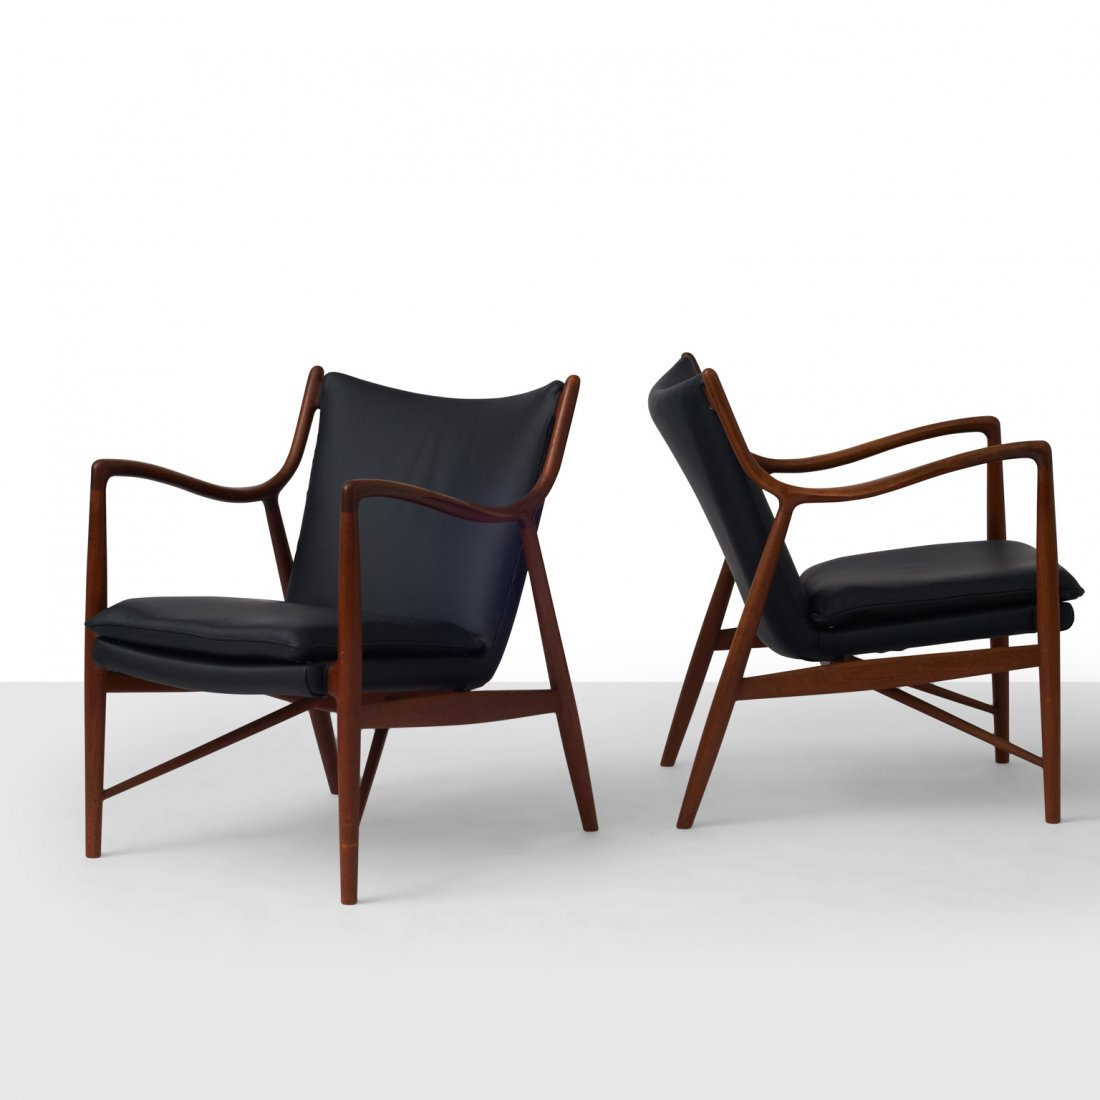 Finn Juhl, Pair of NV45 Chairs for Niels Vodder